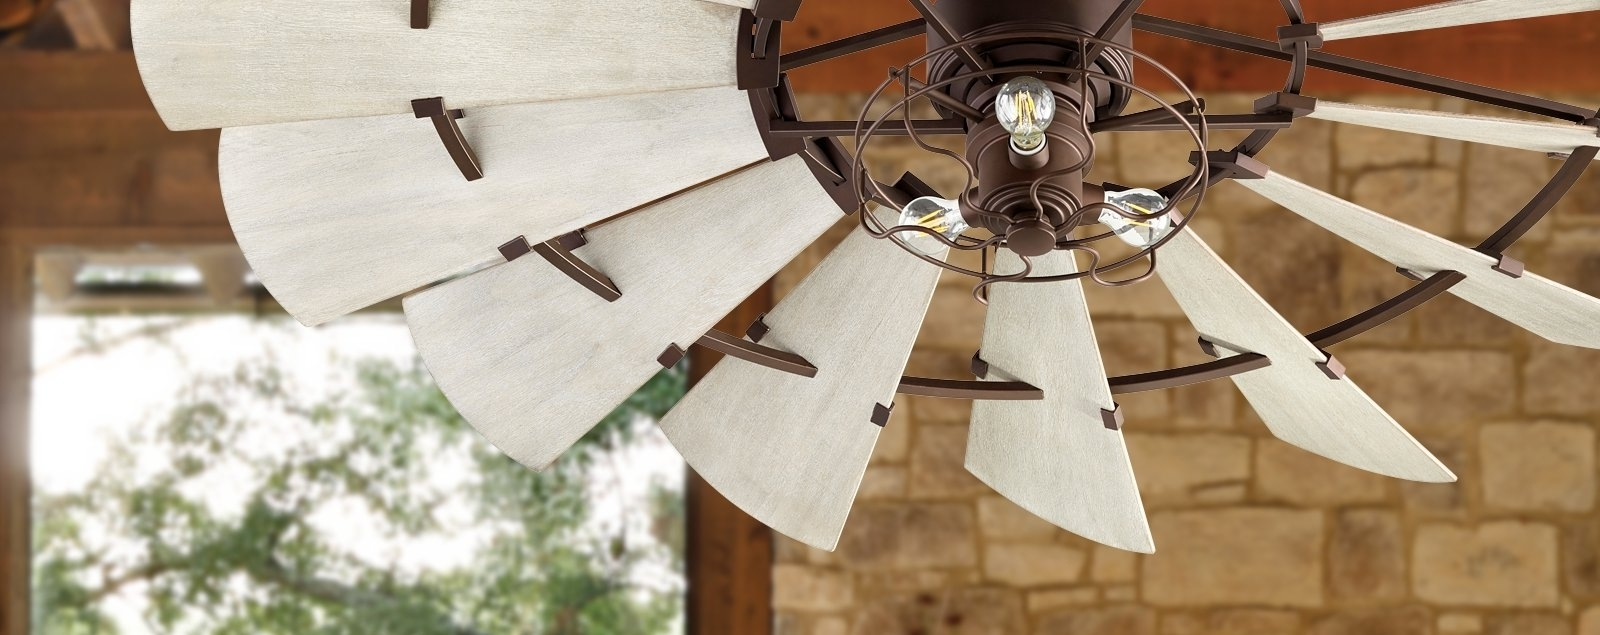 Outdoor Windmill Ceiling Fans With Light With Regard To Most Recent Windmill Ceiling Fans (View 13 of 20)